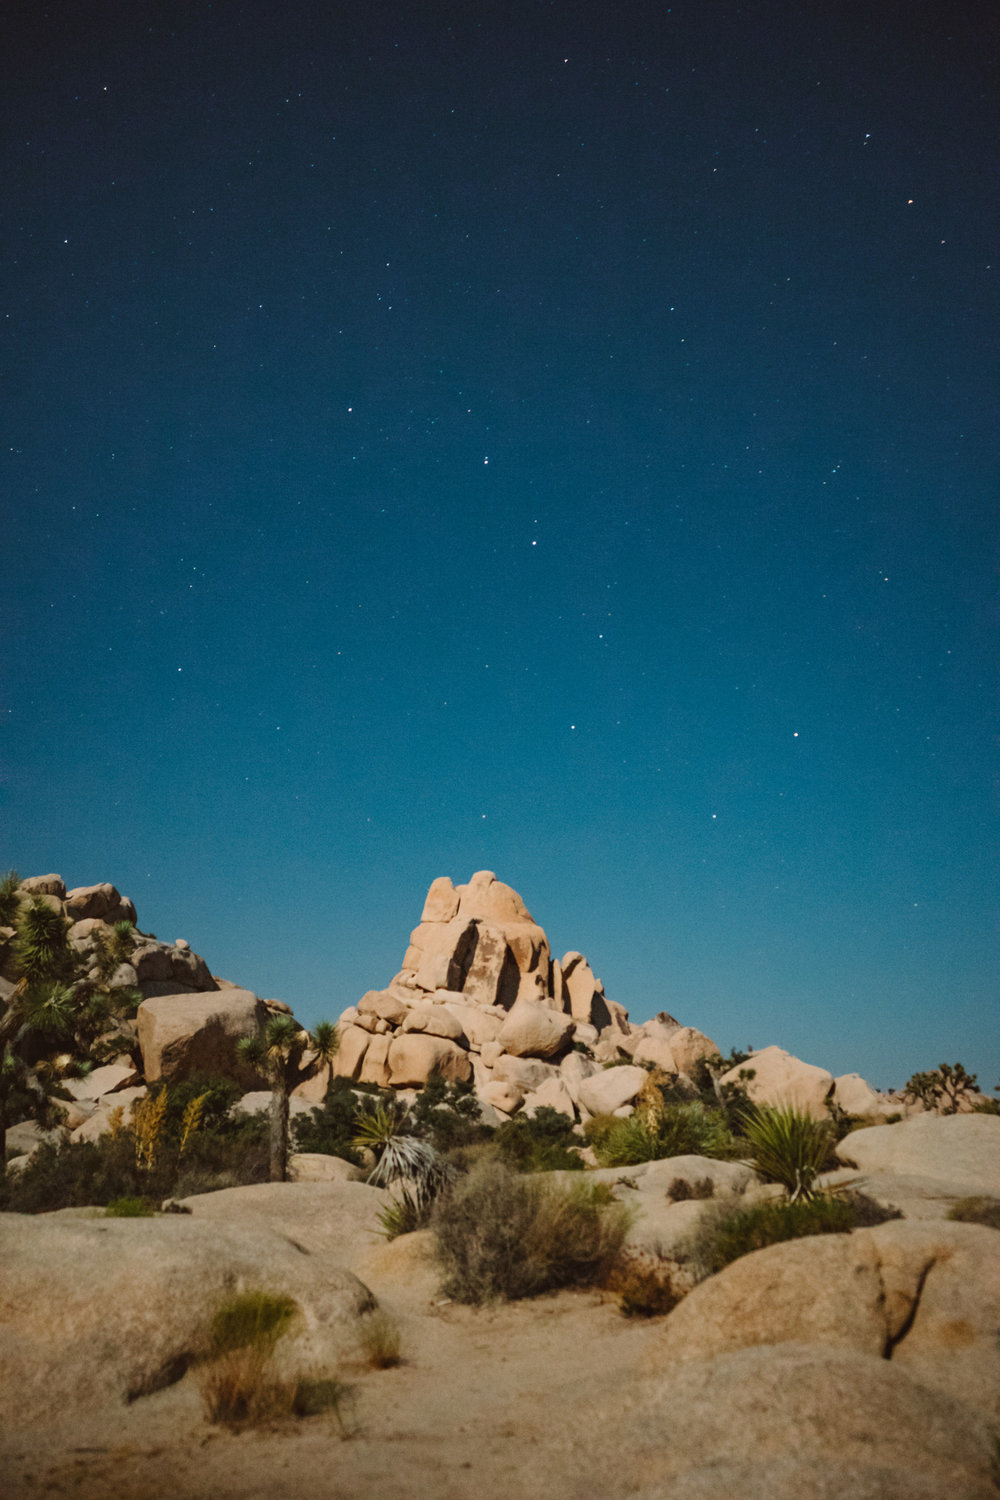 scott-snyder-photo-joshua-tree-05.jpg